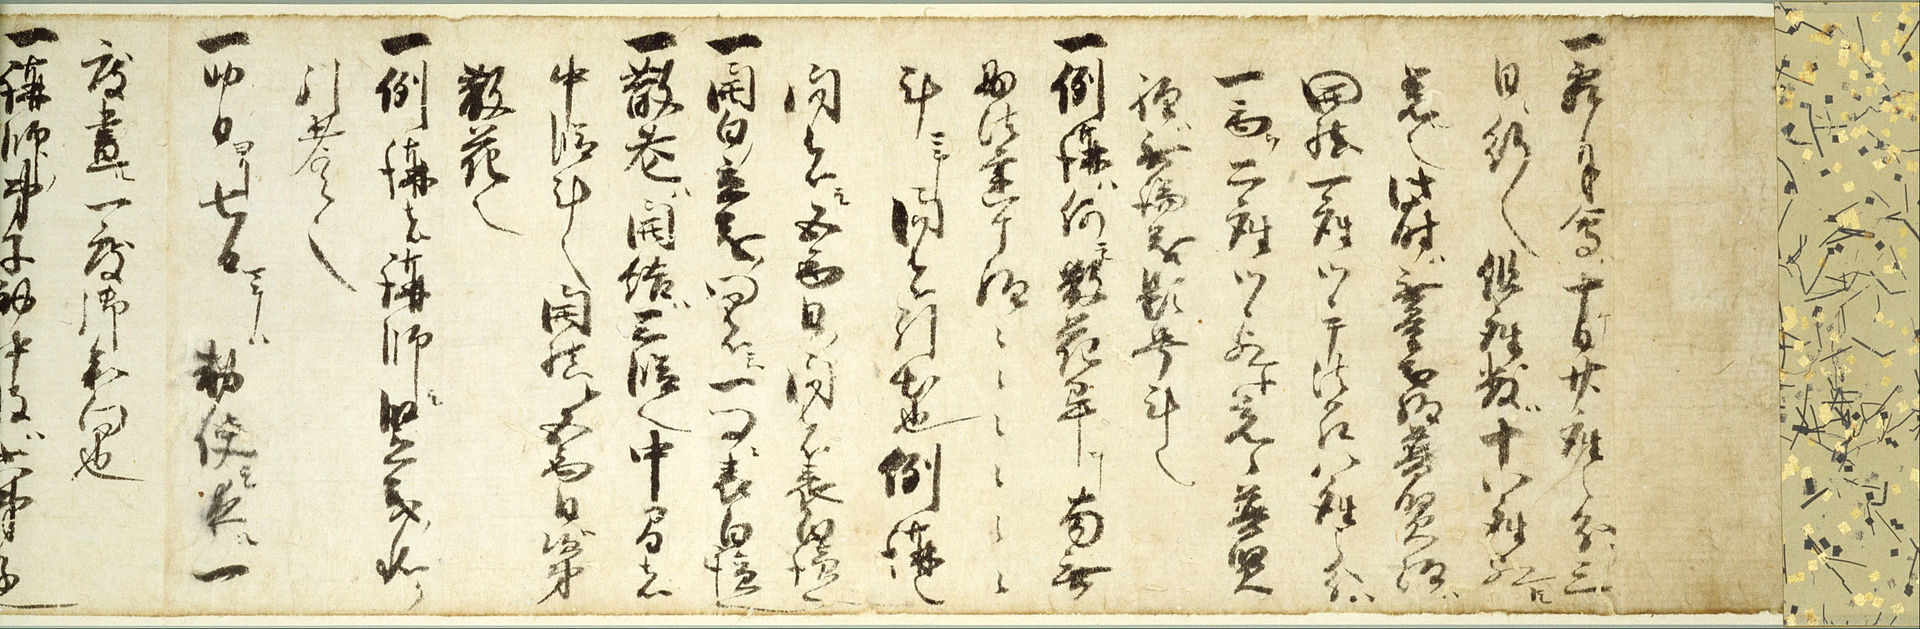 tenkai_-_rule_of_november_memorial_service_for_zhi-yi_-_google_art_project